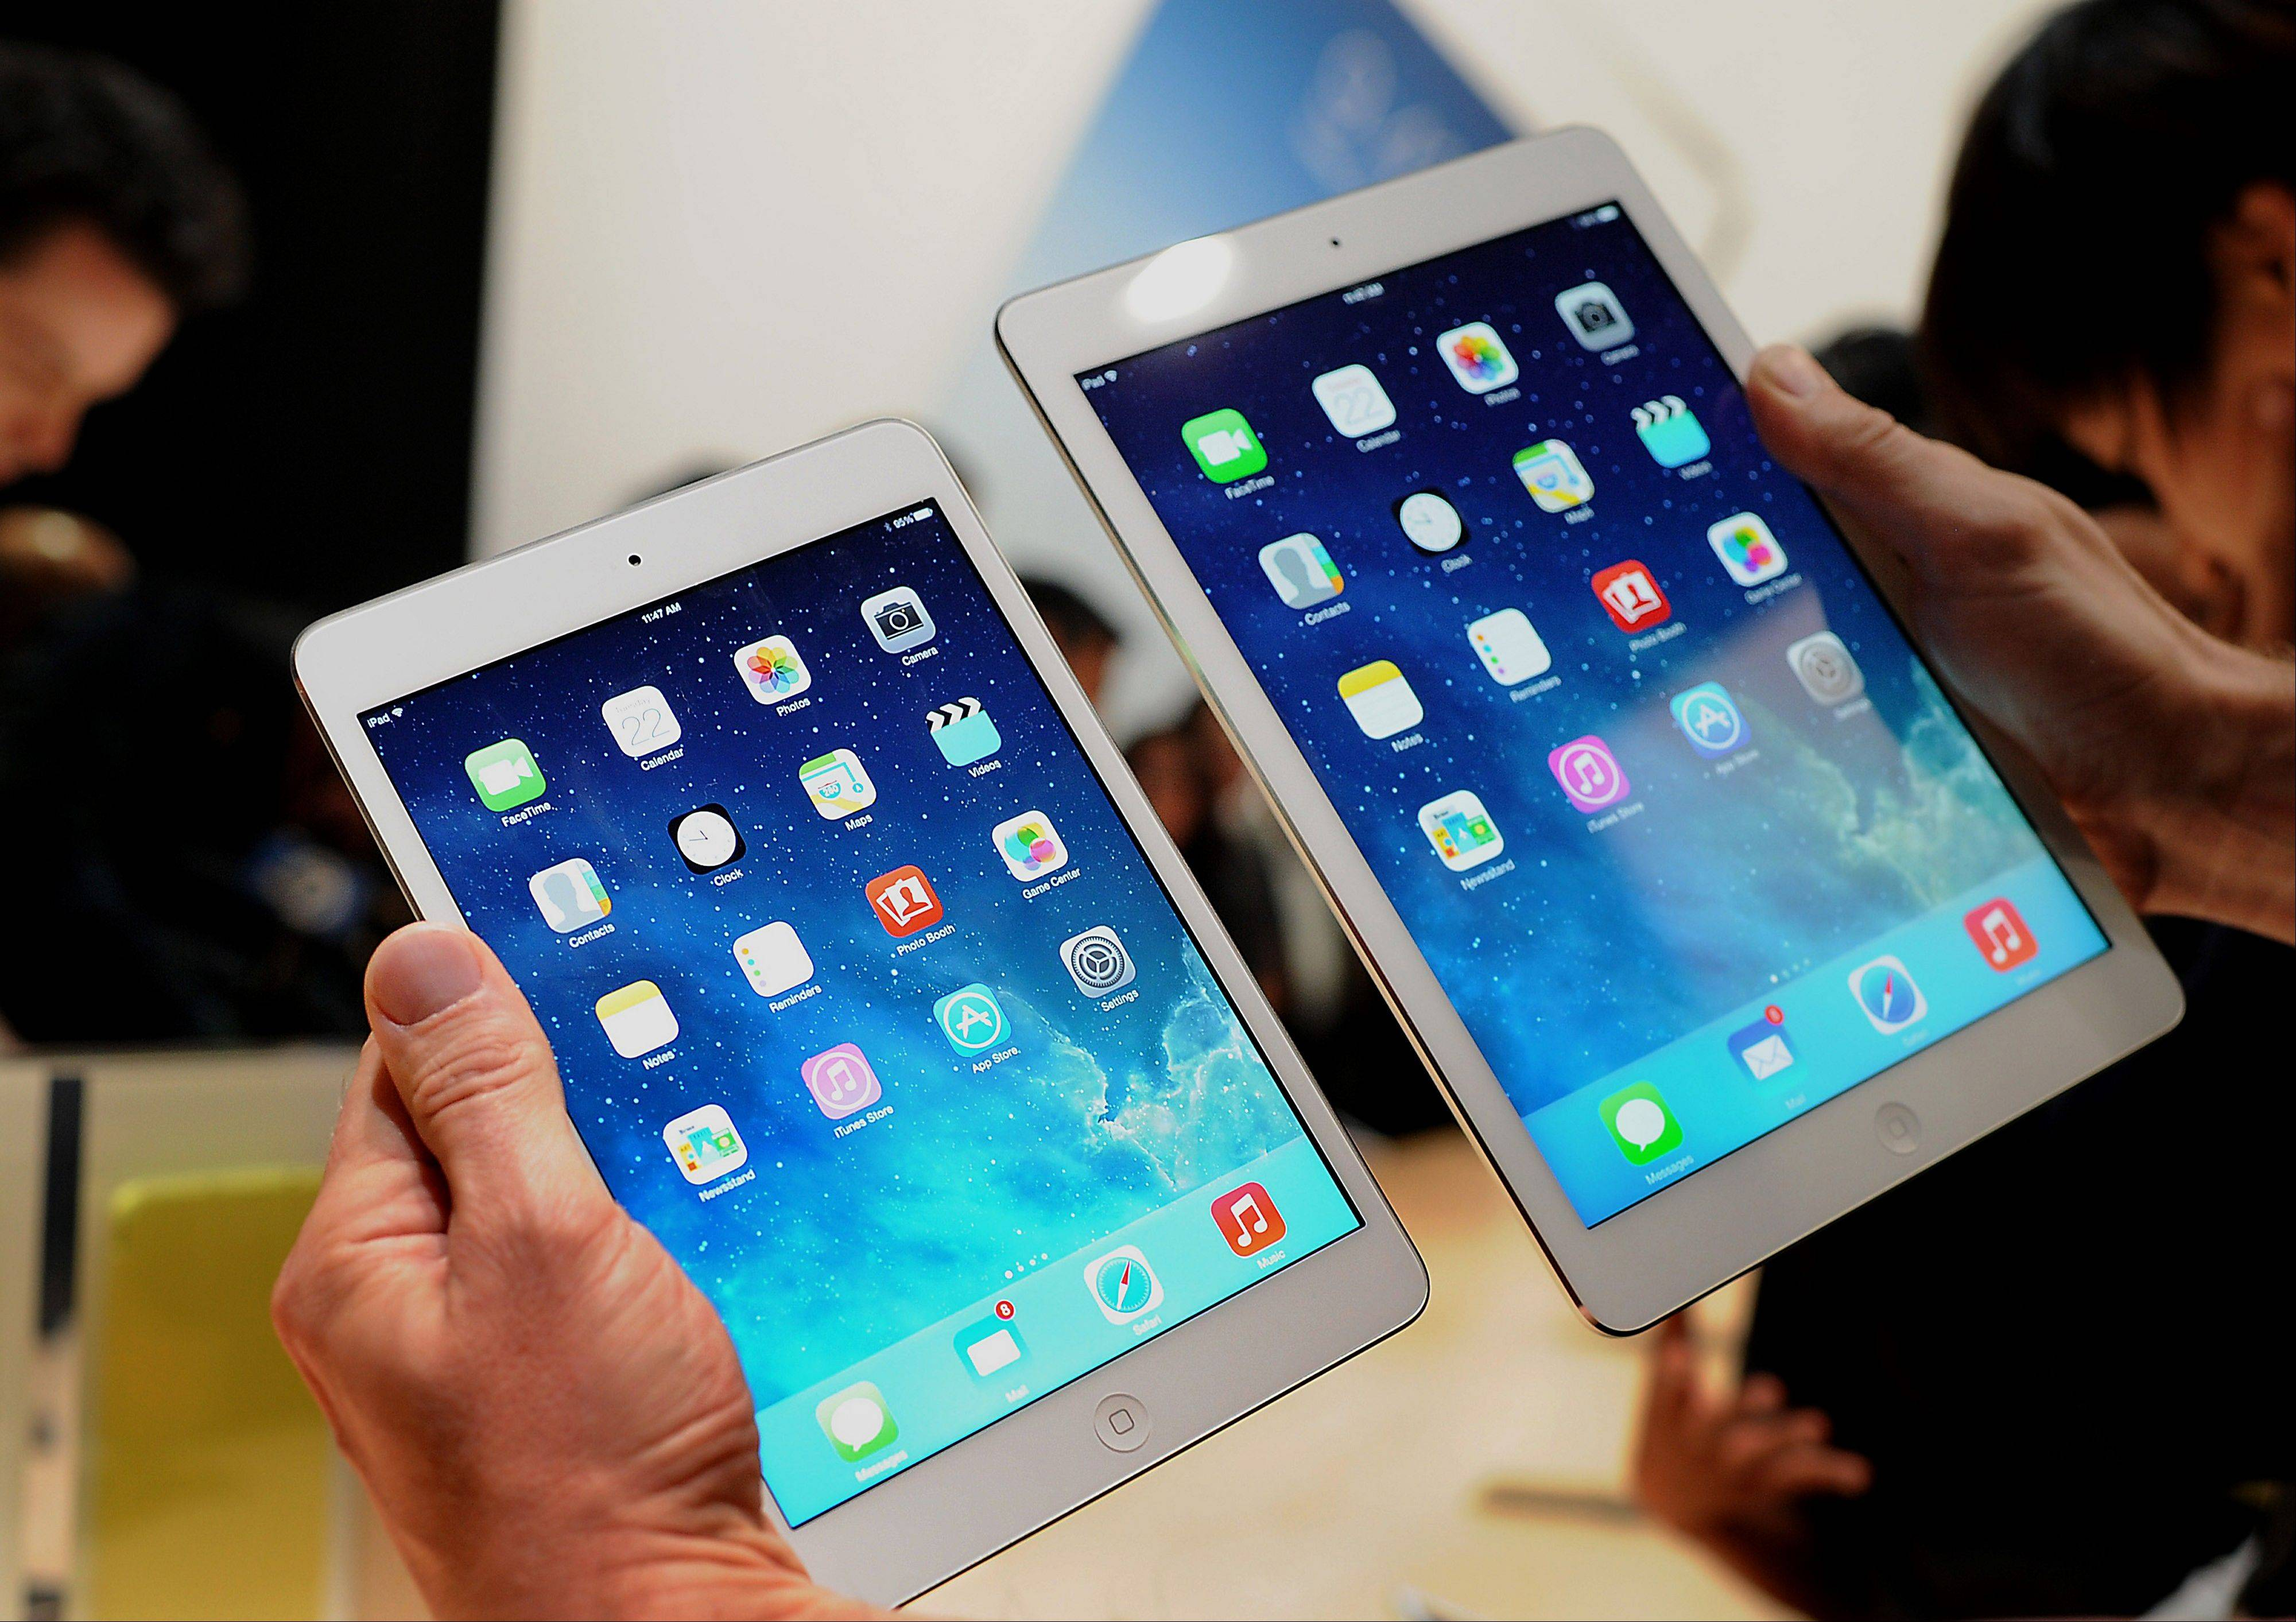 Apple Inc. introduced new iPads in time for holiday shoppers, as it battles to stay ahead of rivals in the increasingly crowded market for tablet computers.